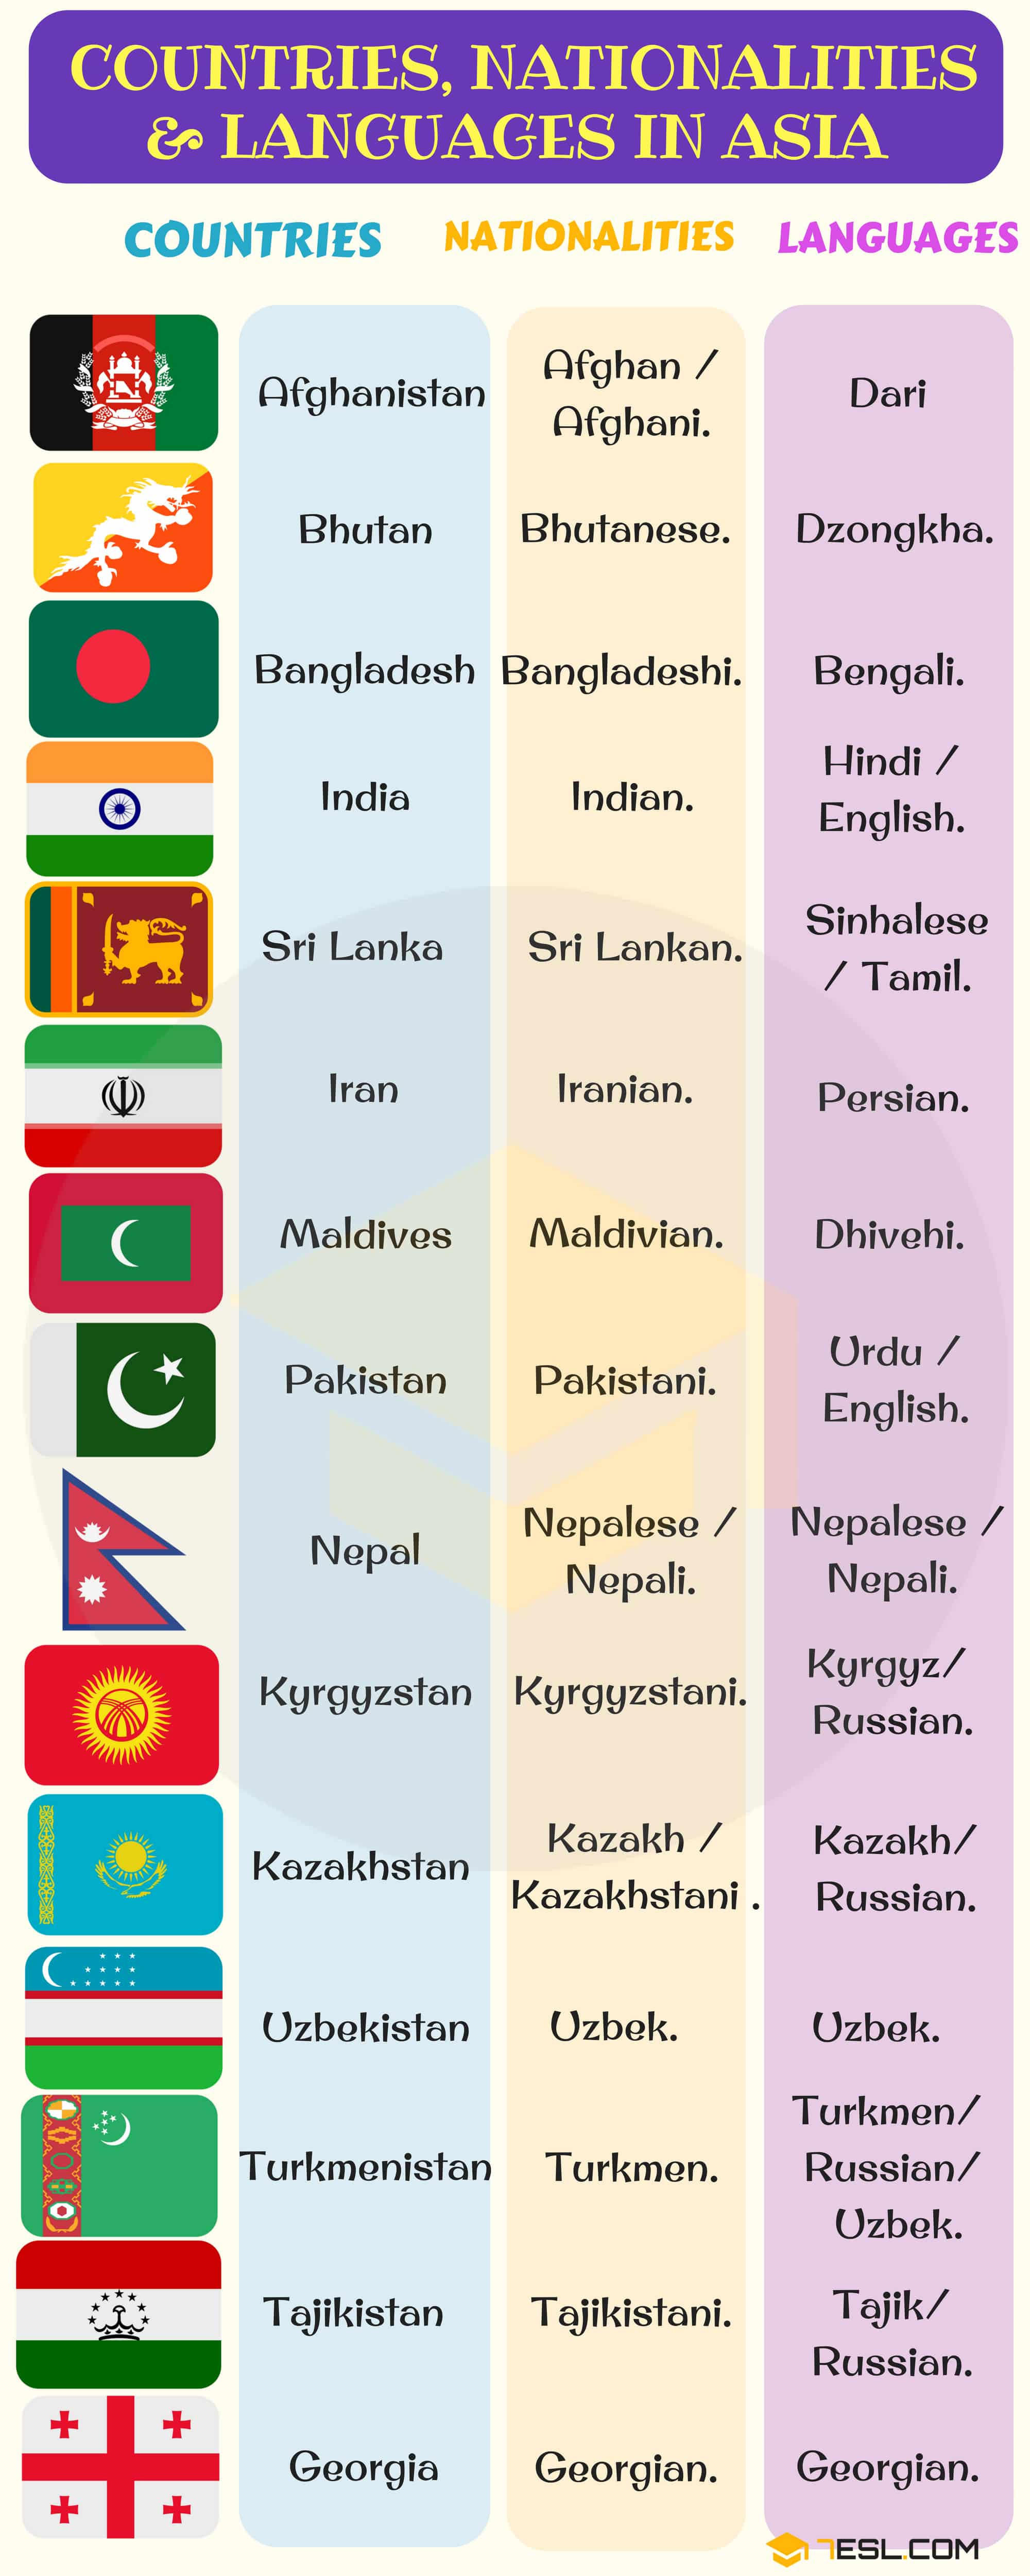 Languages, Countries and Nationalities | List of Countries Image 1